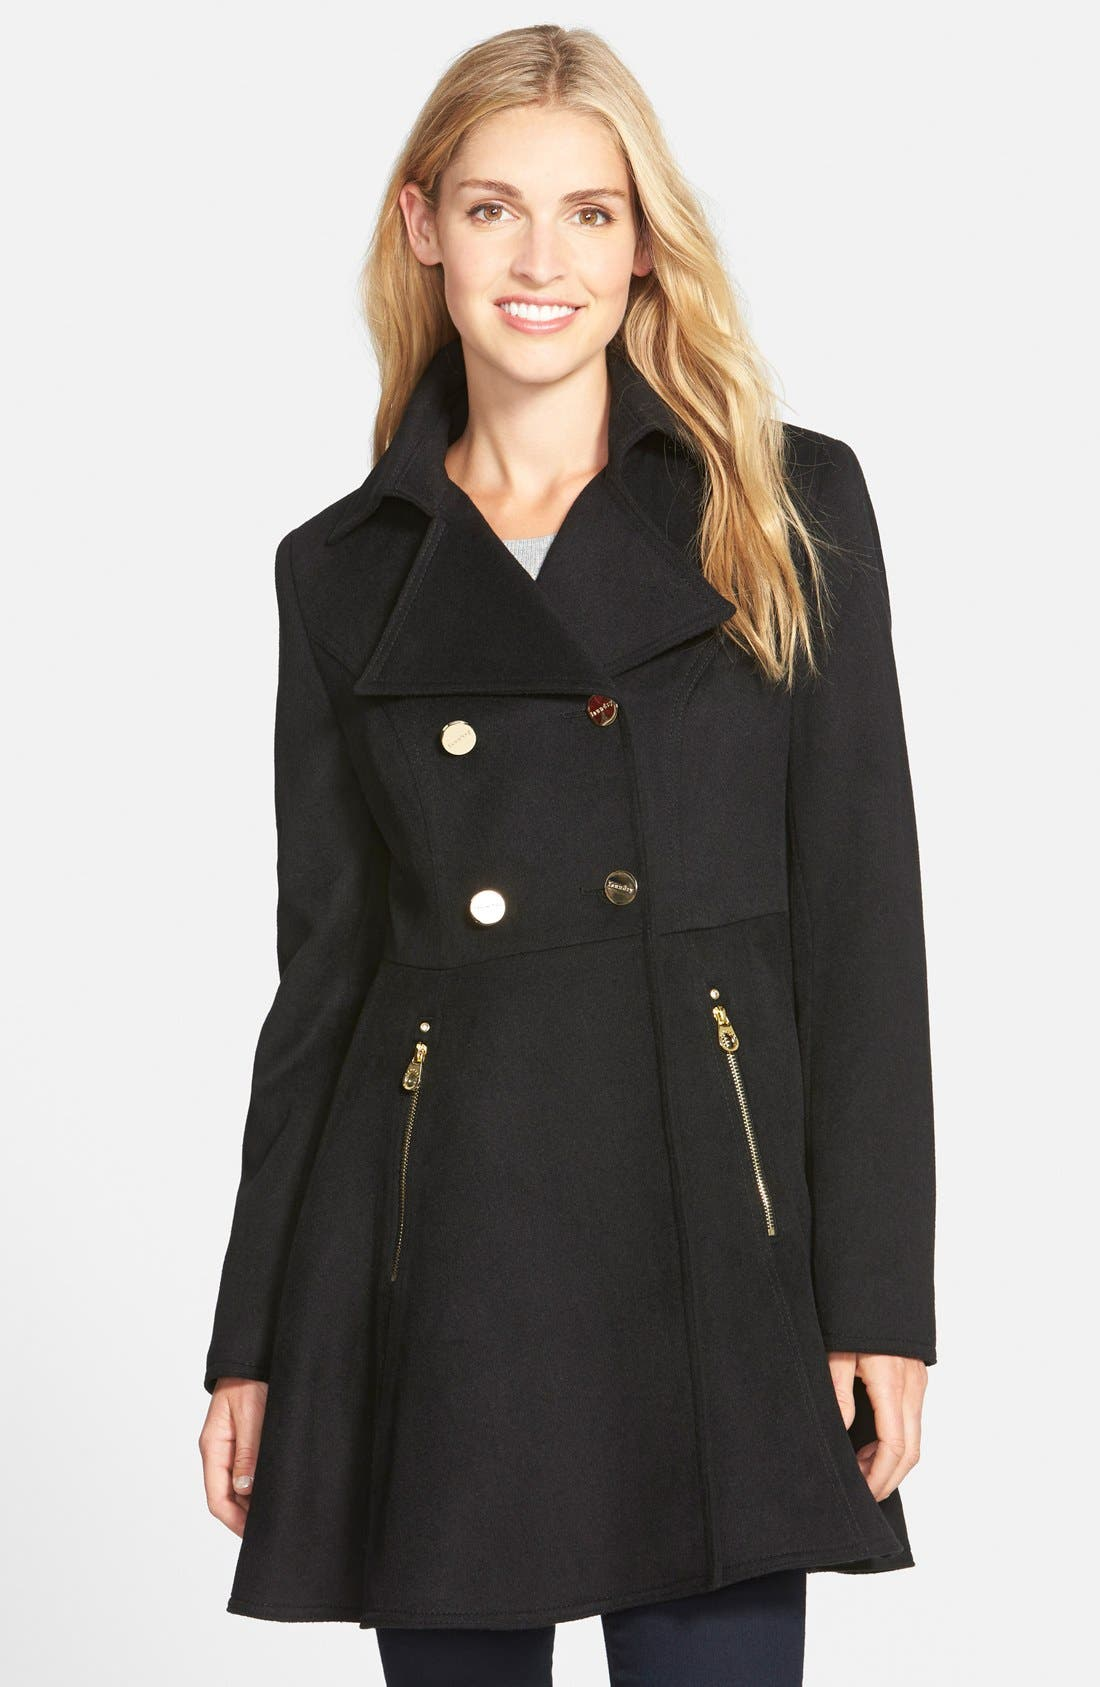 Laundry by ShelliSegalDouble Breasted Fit & Flare Coat,                         Main,                         color, Black